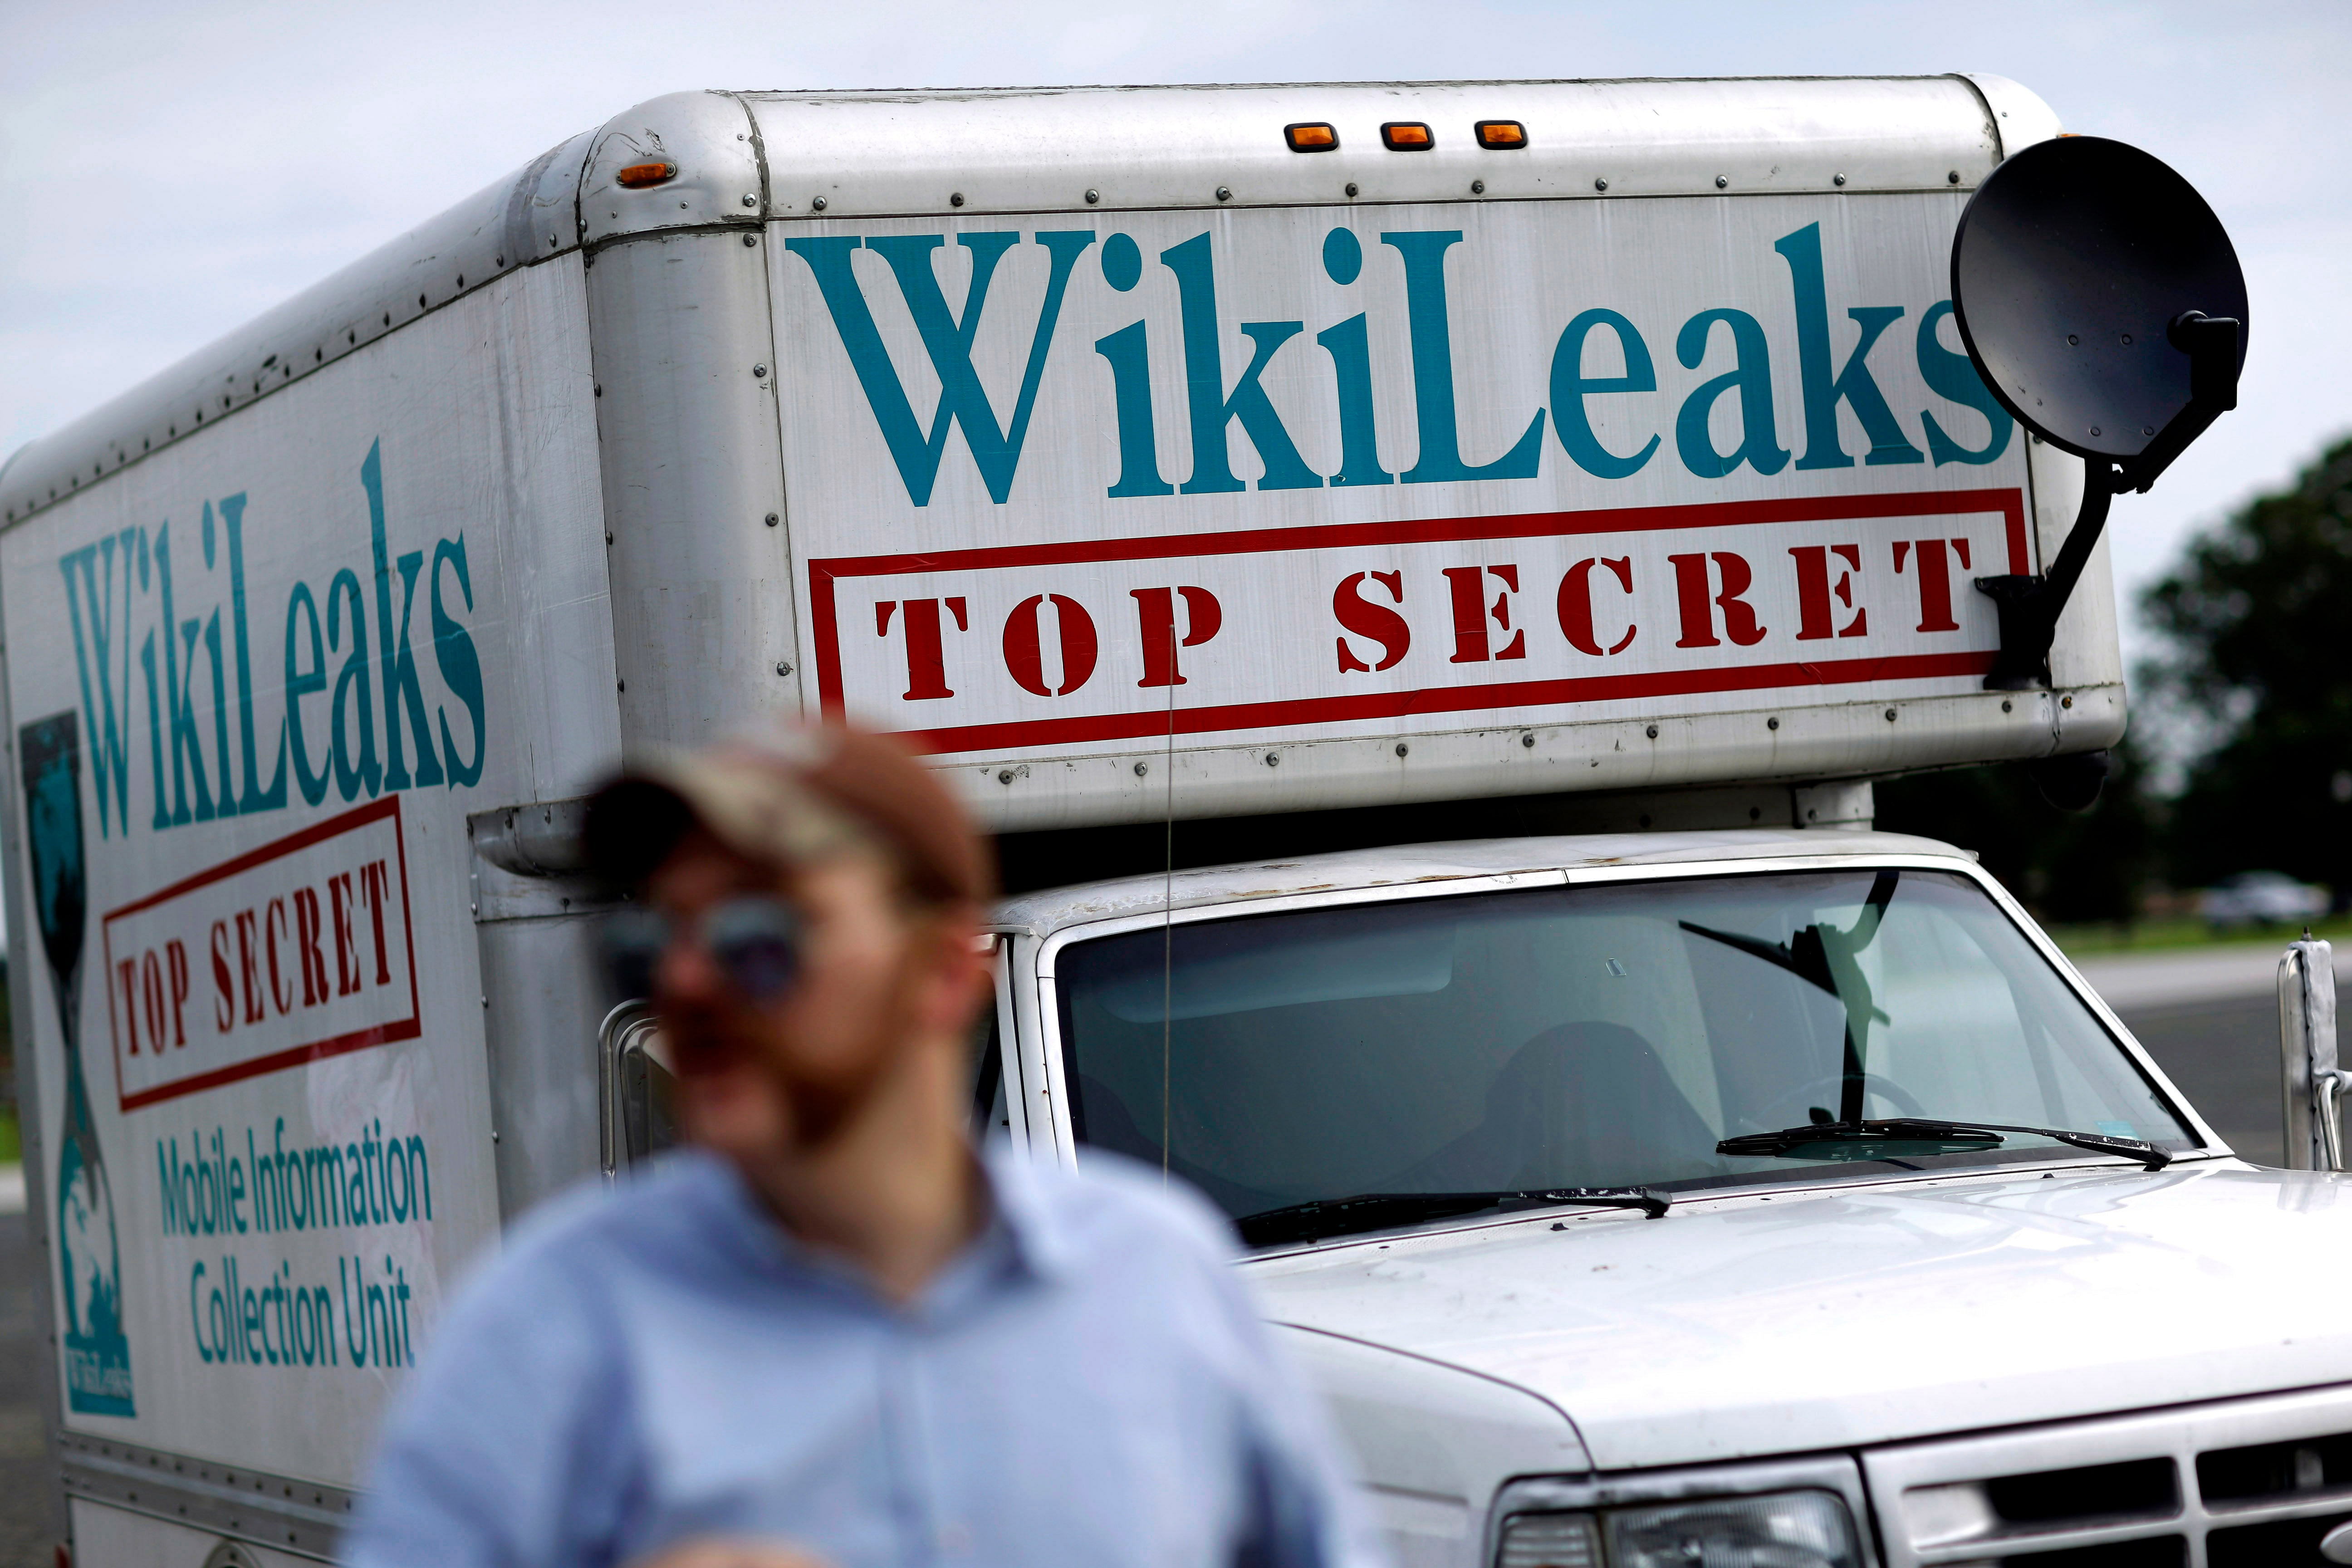 Exclusive: Read Julian Assange's Introduction To The Wikileaks Files